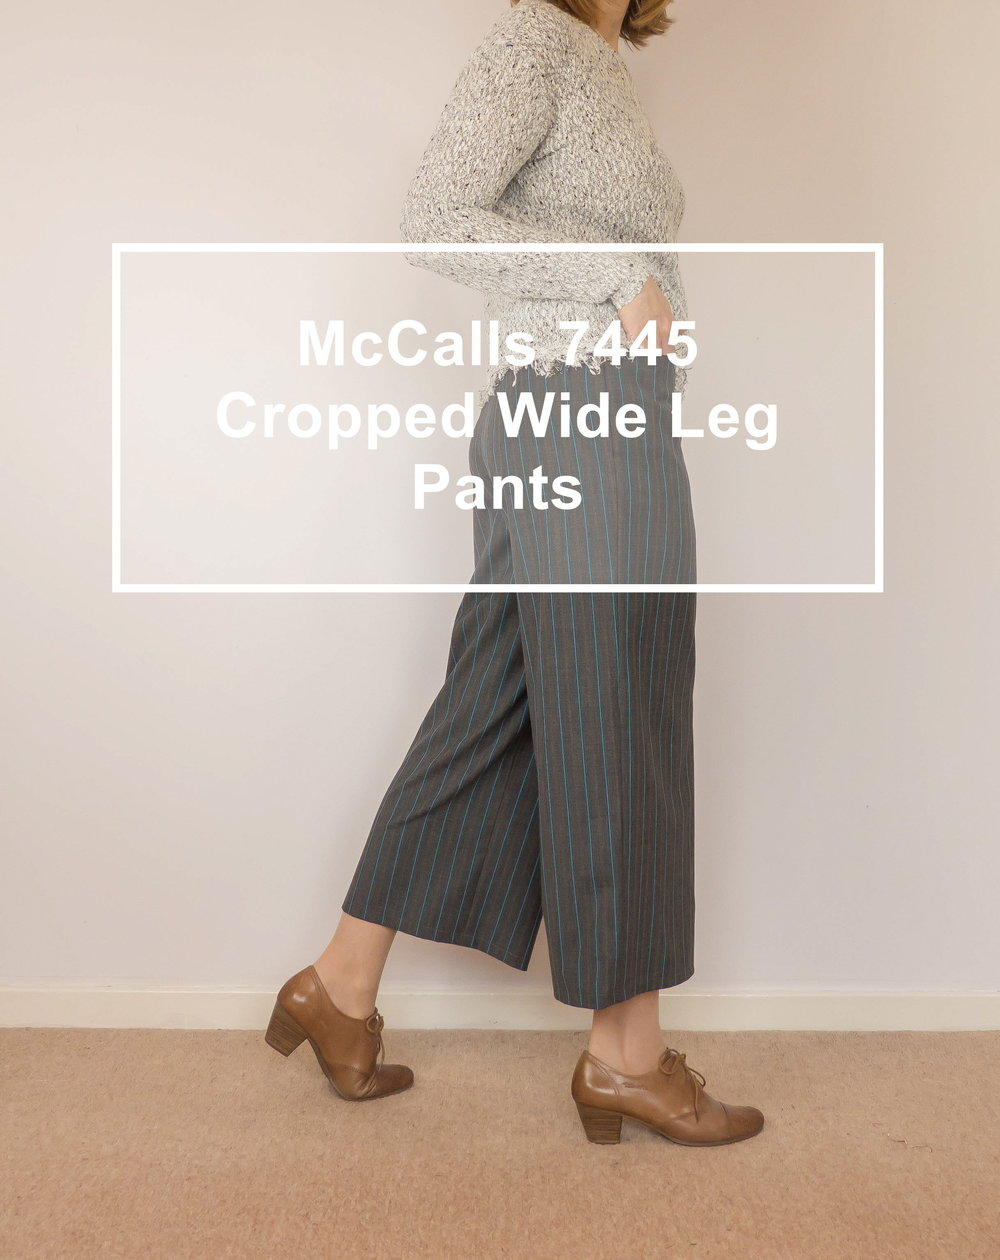 McCalls 7445 cropped wide leg pants